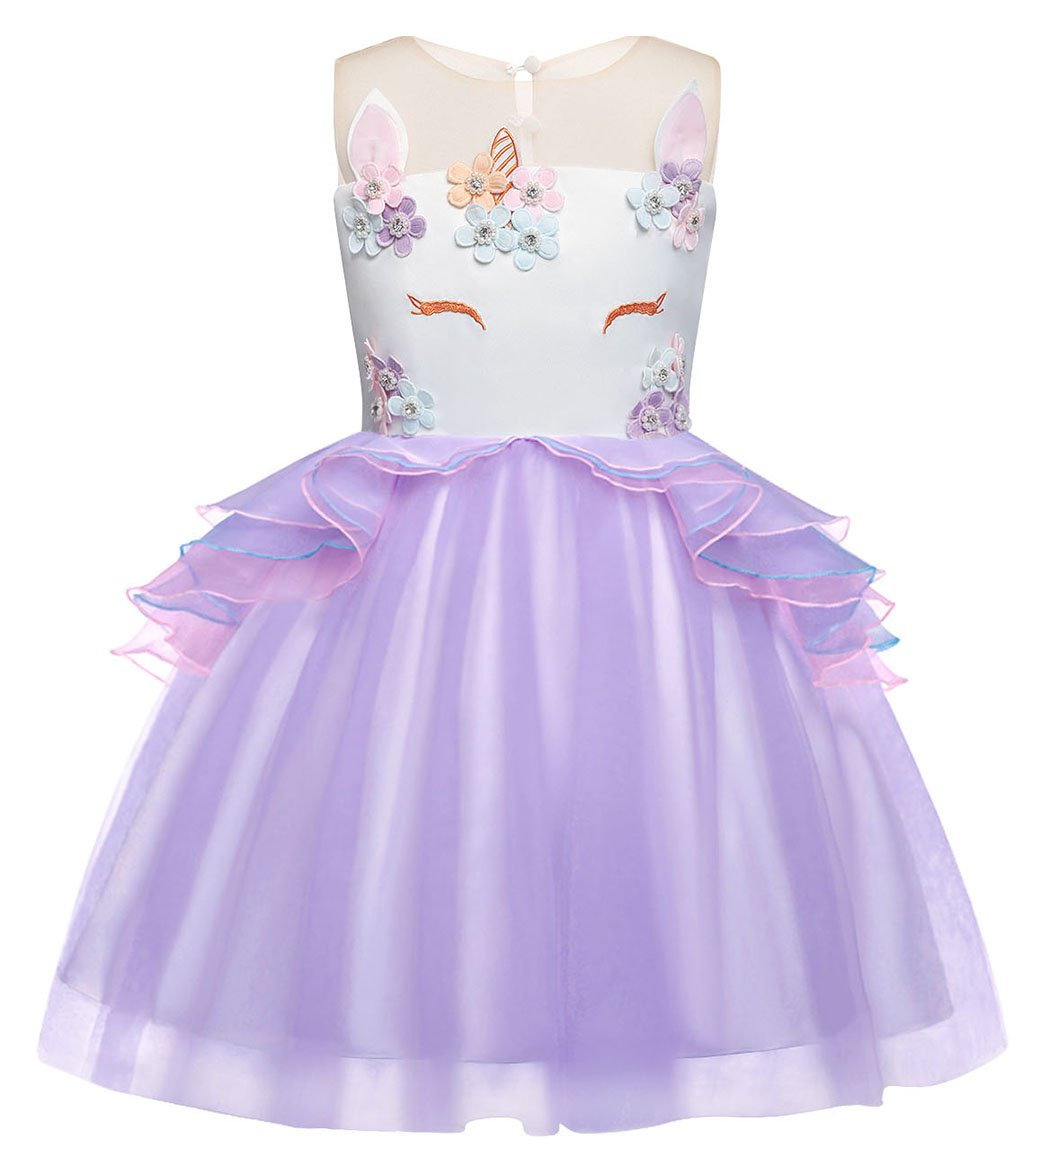 Cotrio Baby Girls Unicorn Costume Dress Pageant Party Dresses Flower Evening Gowns Tutu Dress Size 8 (7-8Yrs, Purple)